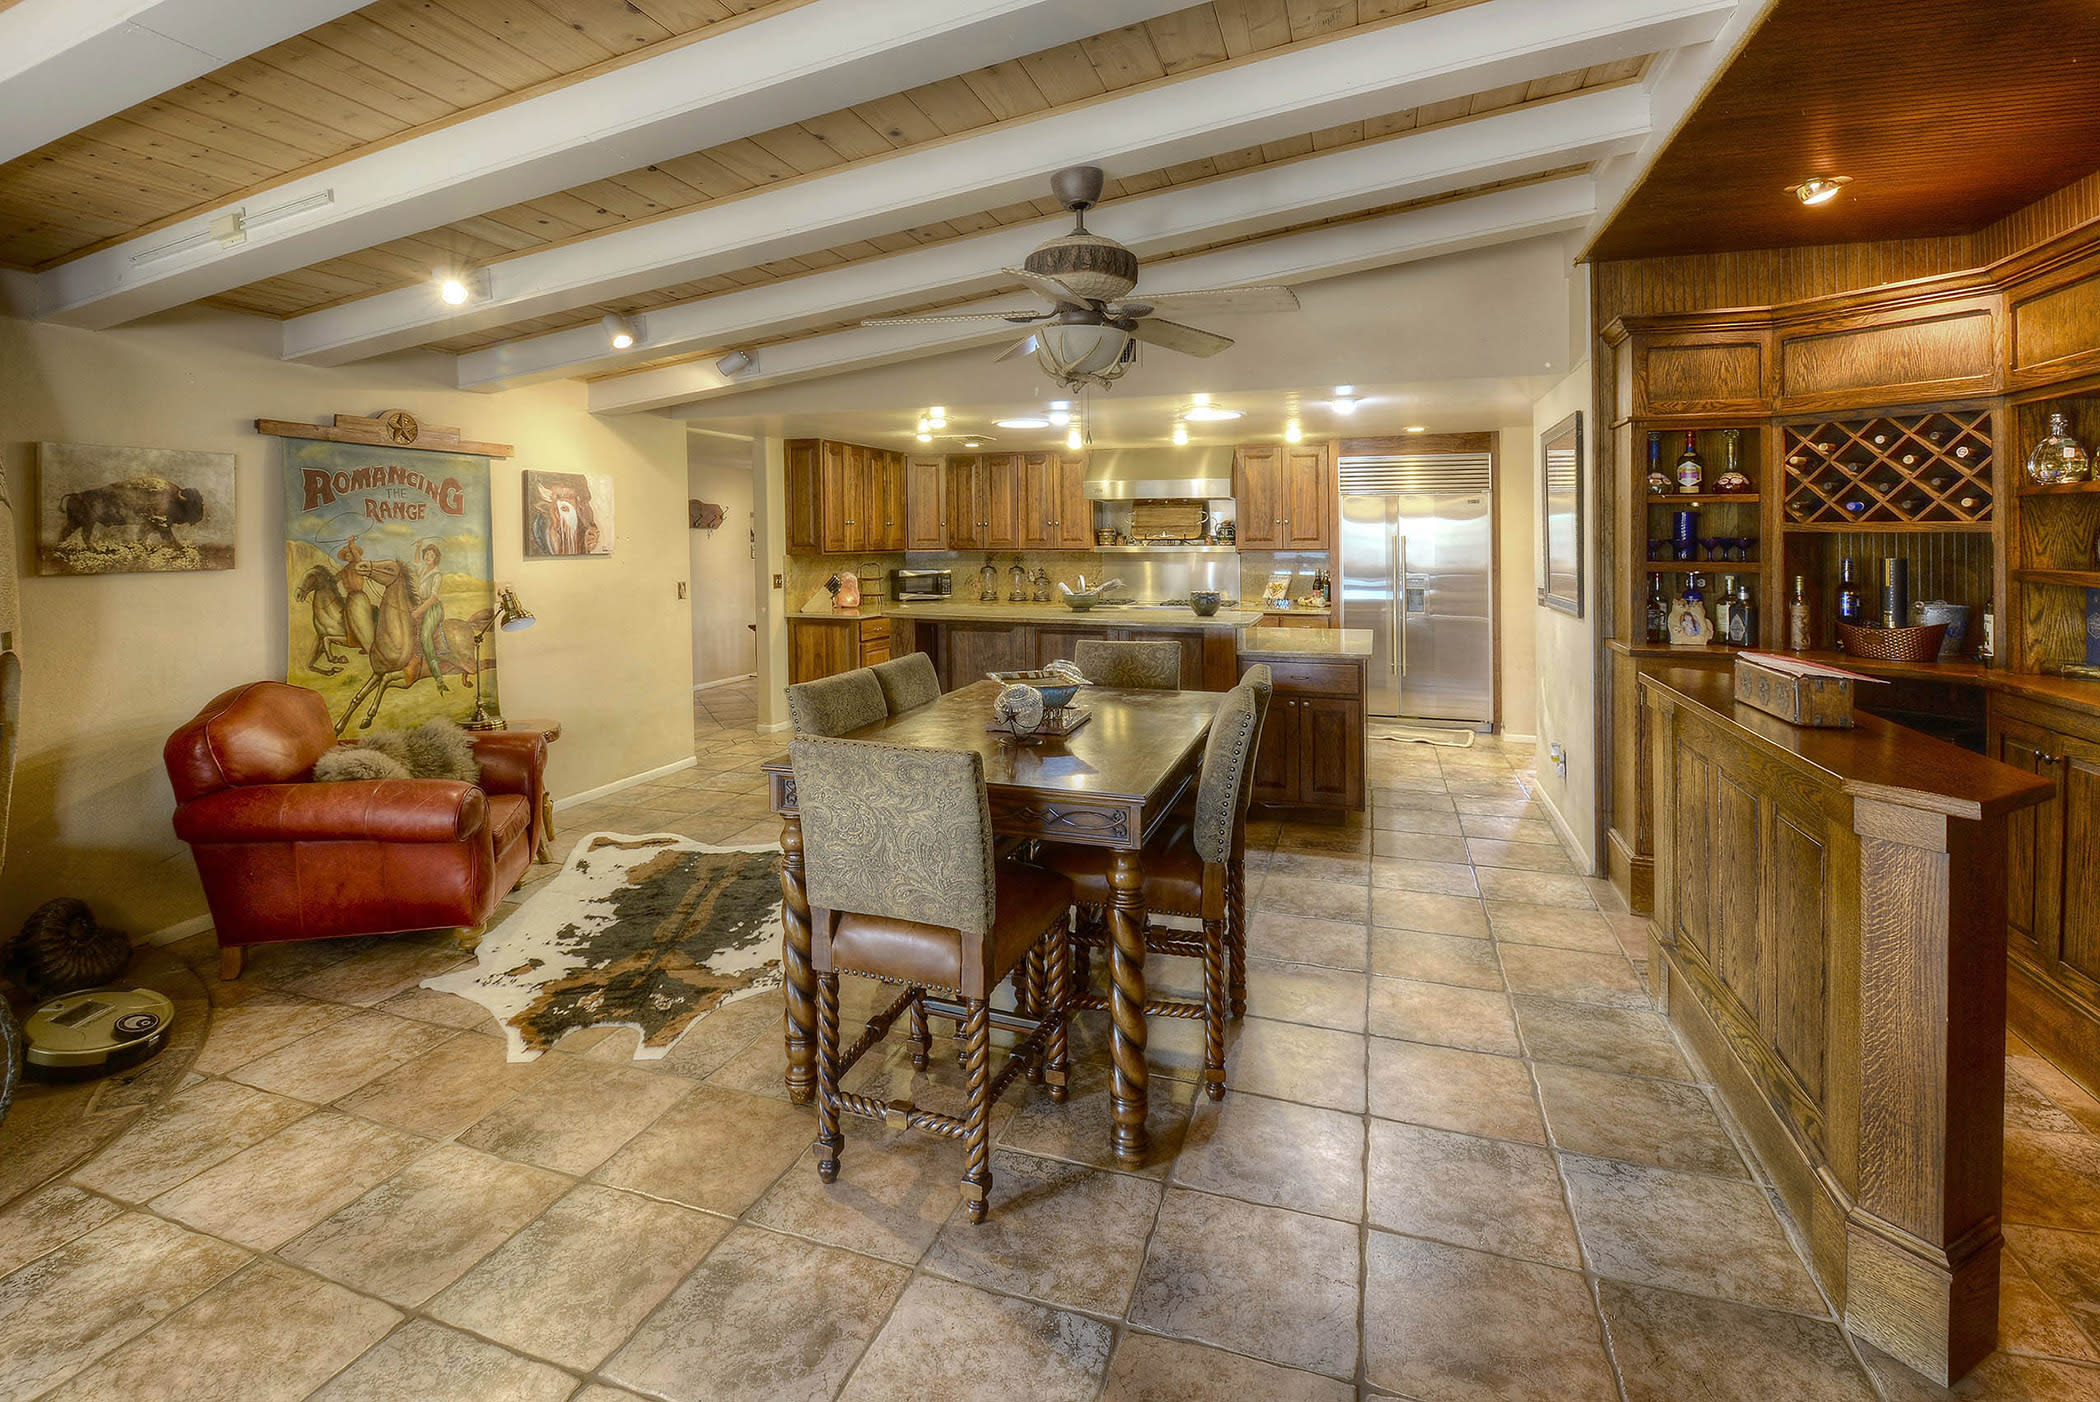 Tile flooring meets your feet in the expansive kitchen and dining area.